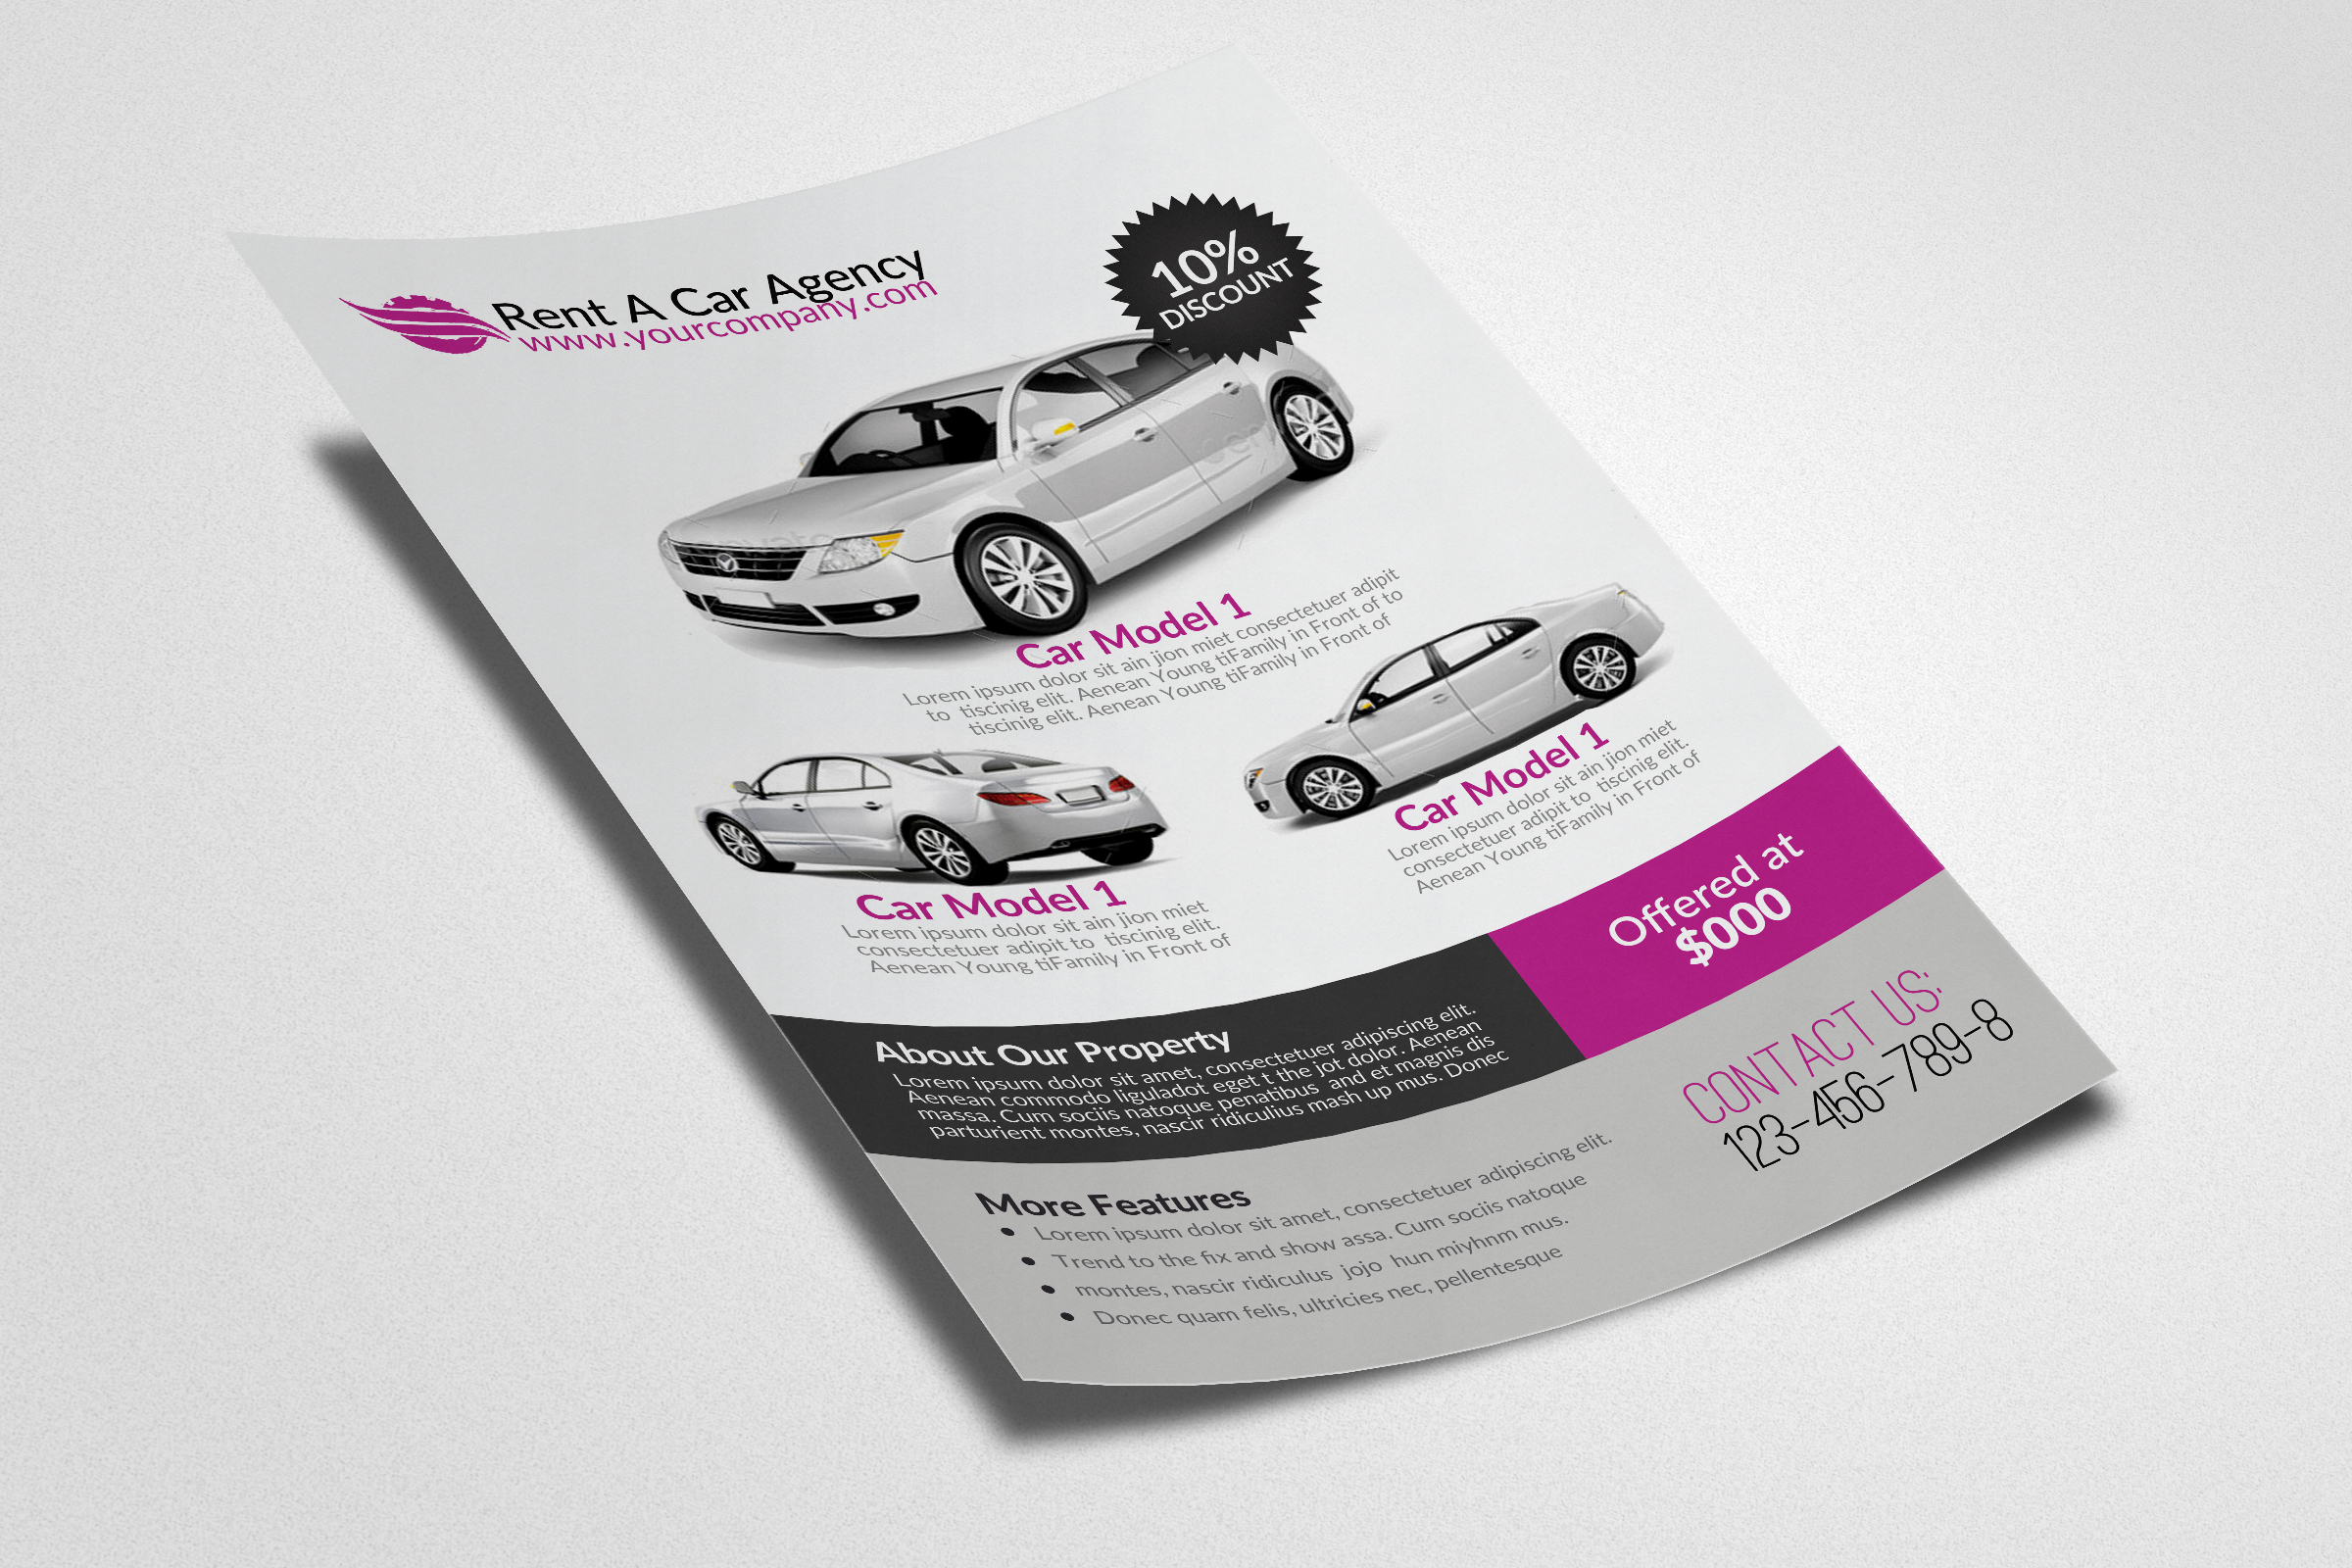 Rent A Car Flyer example image 3